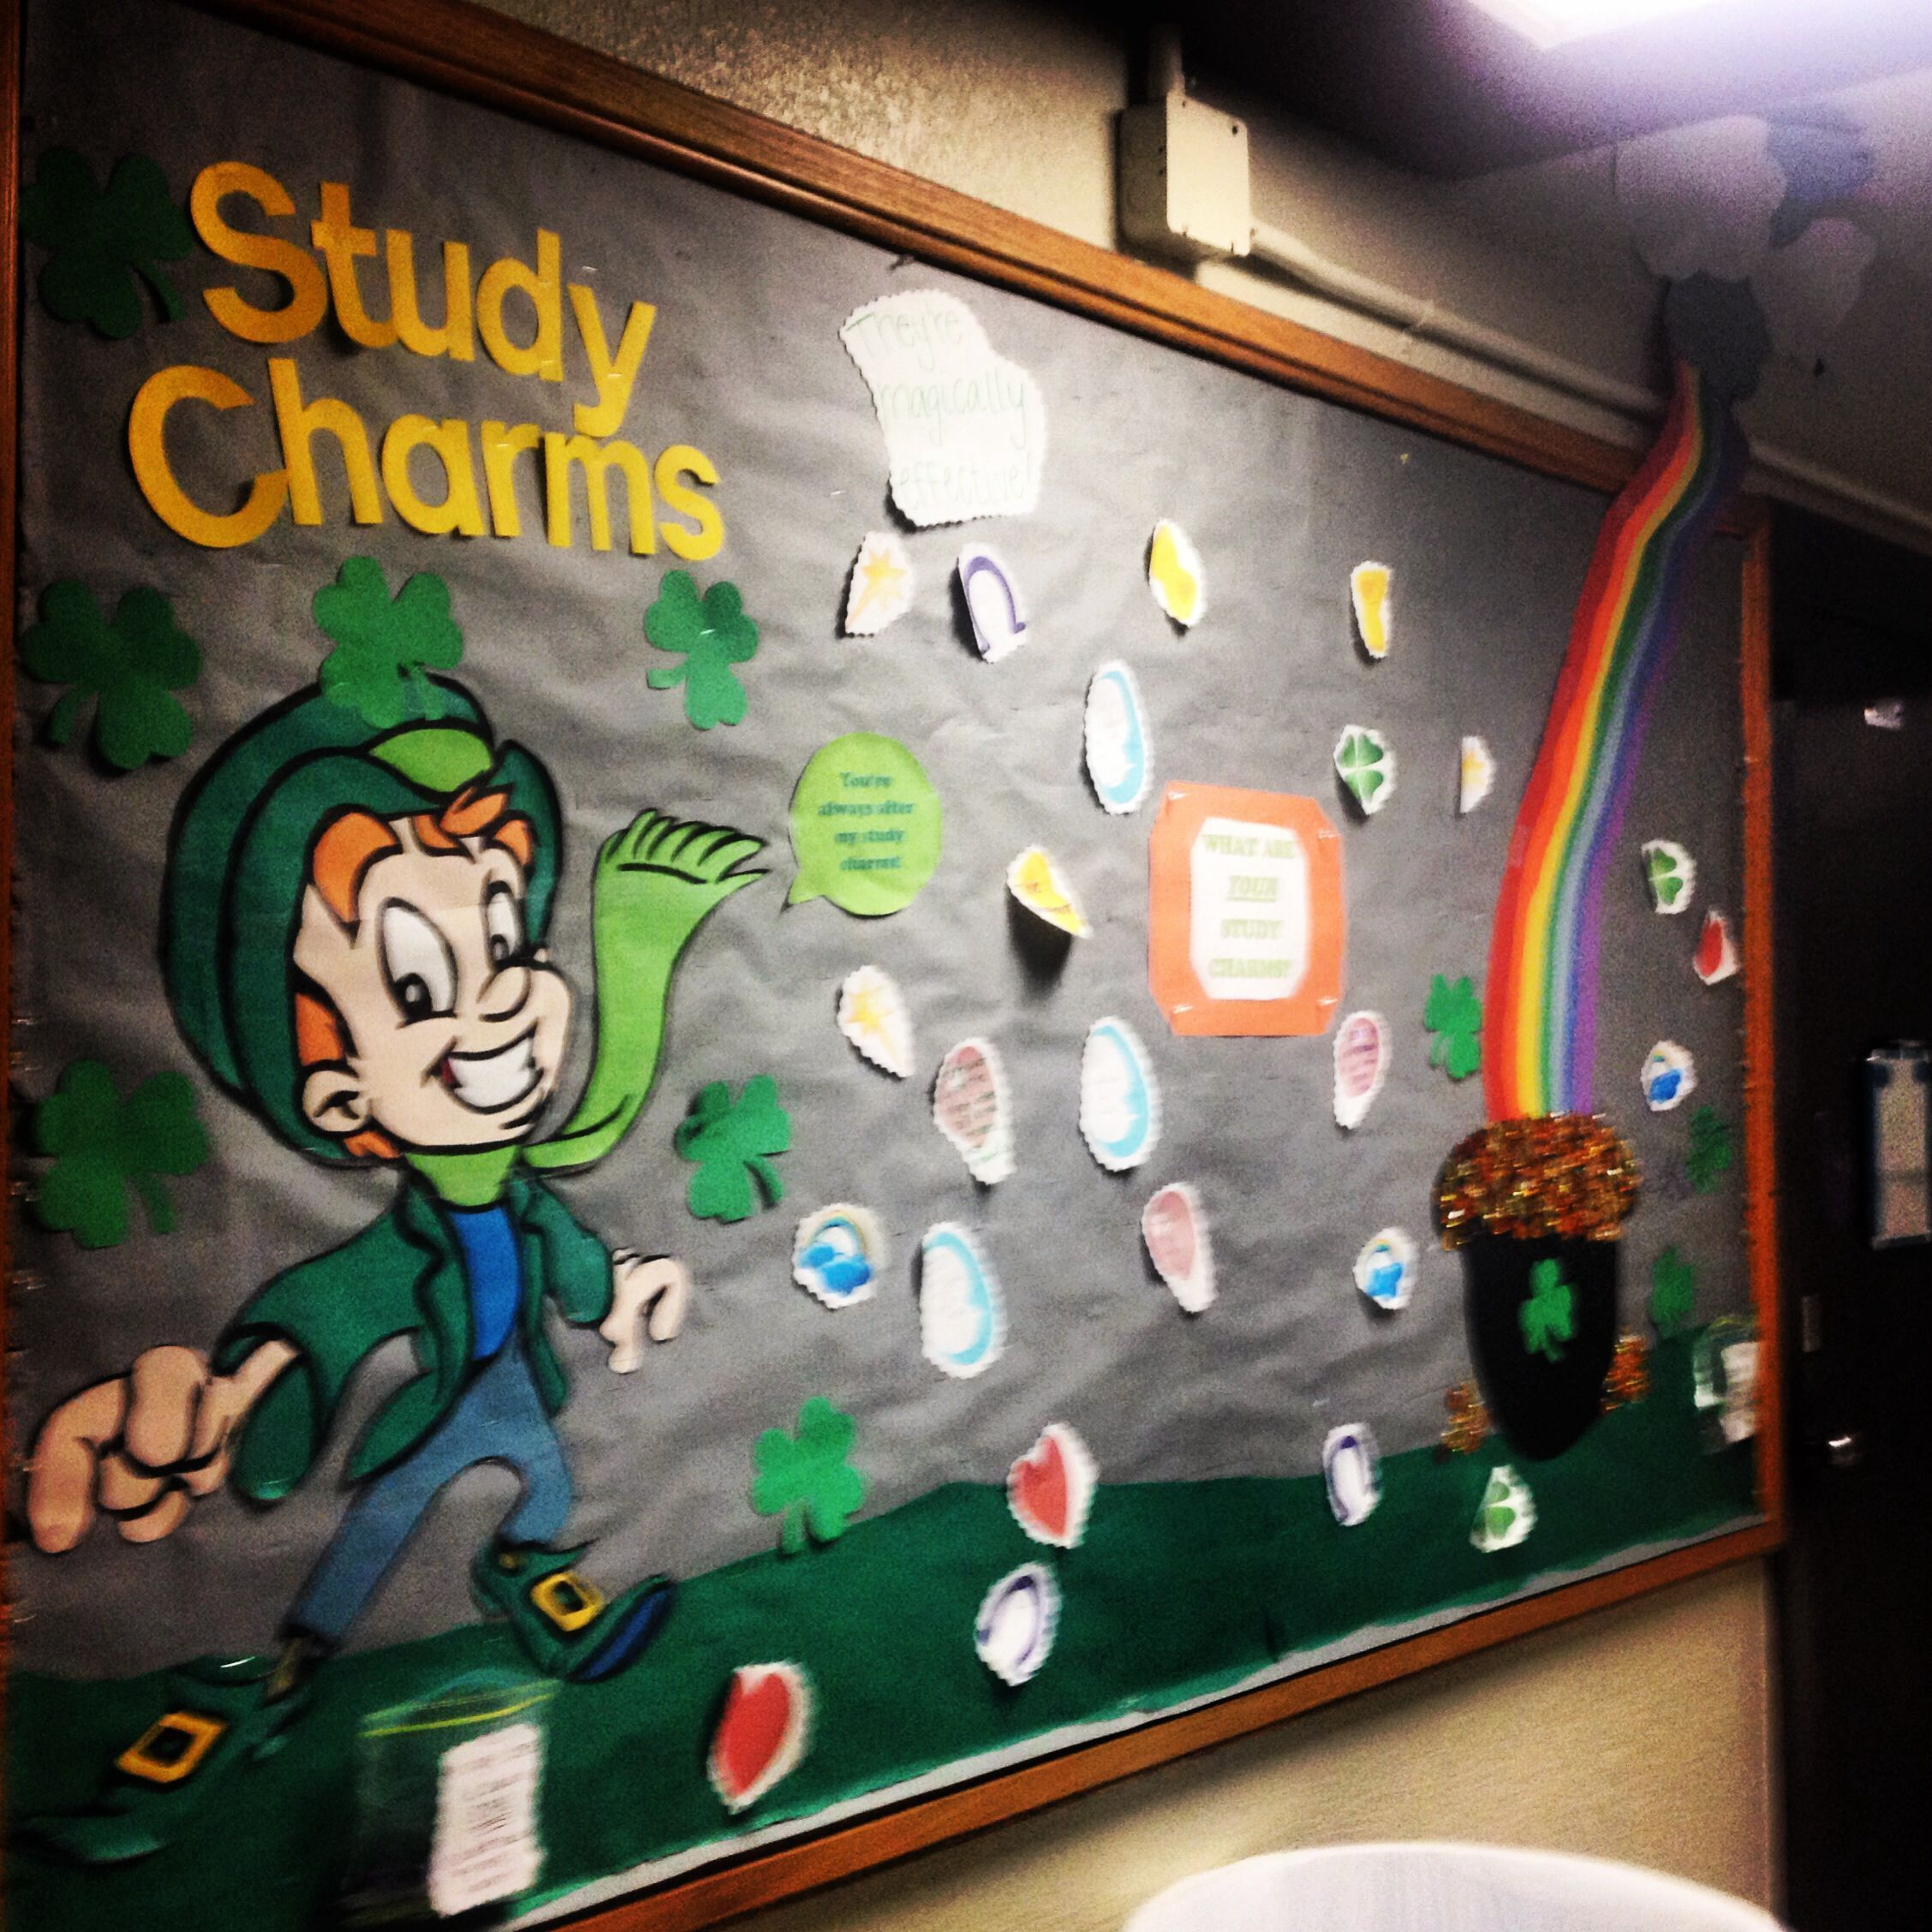 Ra bulletin board month of March! Study charms! #rabulletinboards Ra bulletin board month of March! Study charms! #rabulletinboards Ra bulletin board month of March! Study charms! #rabulletinboards Ra bulletin board month of March! Study charms! #rabulletinboards